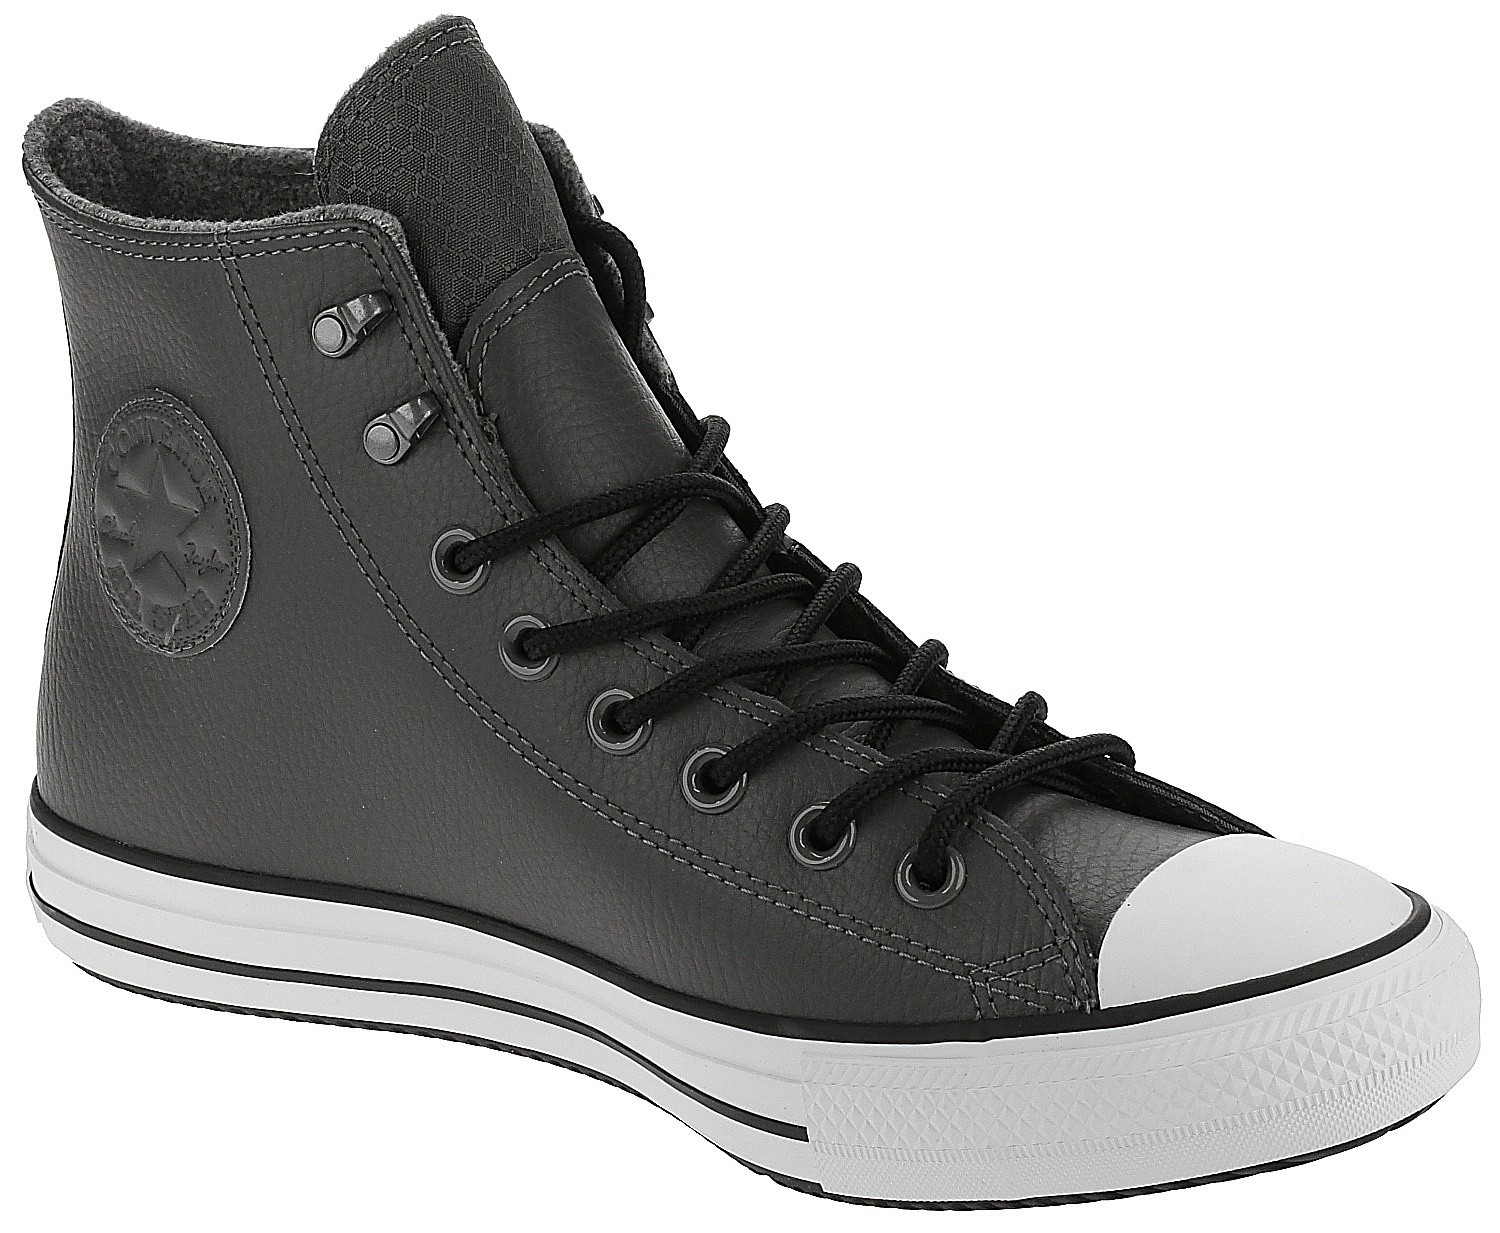 converse all star winter shoes